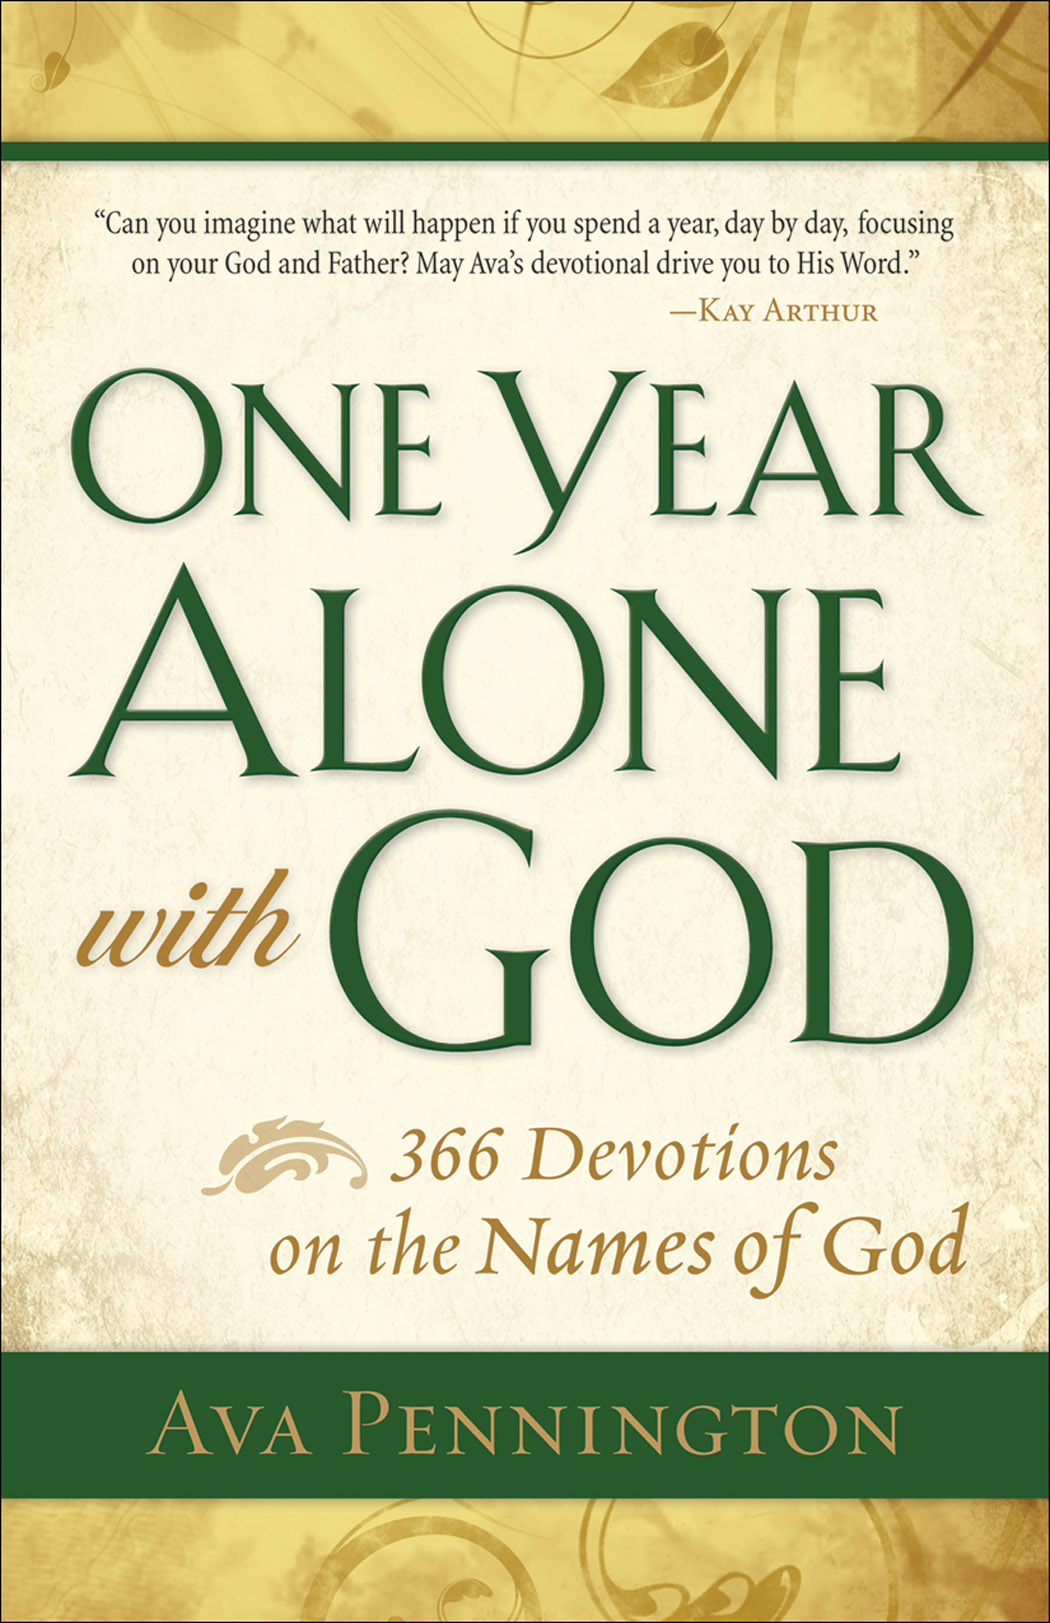 One Year Alone with God By: Ava Pennington